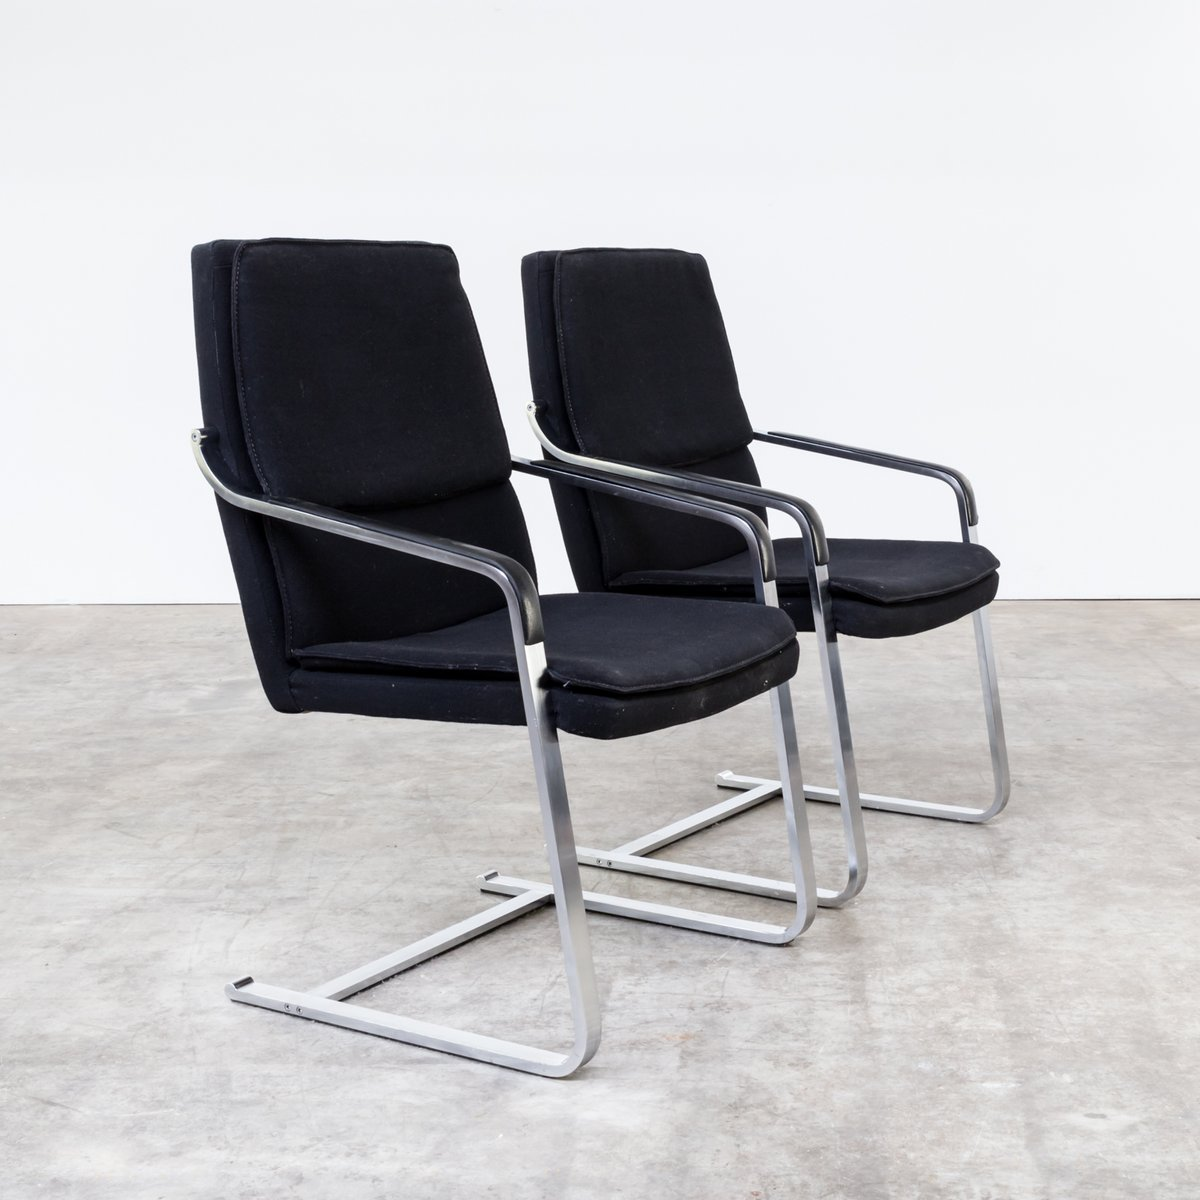 Black Chairs For Sale Vintage Chrome And Black Fabric Chairs From Walter Knoll